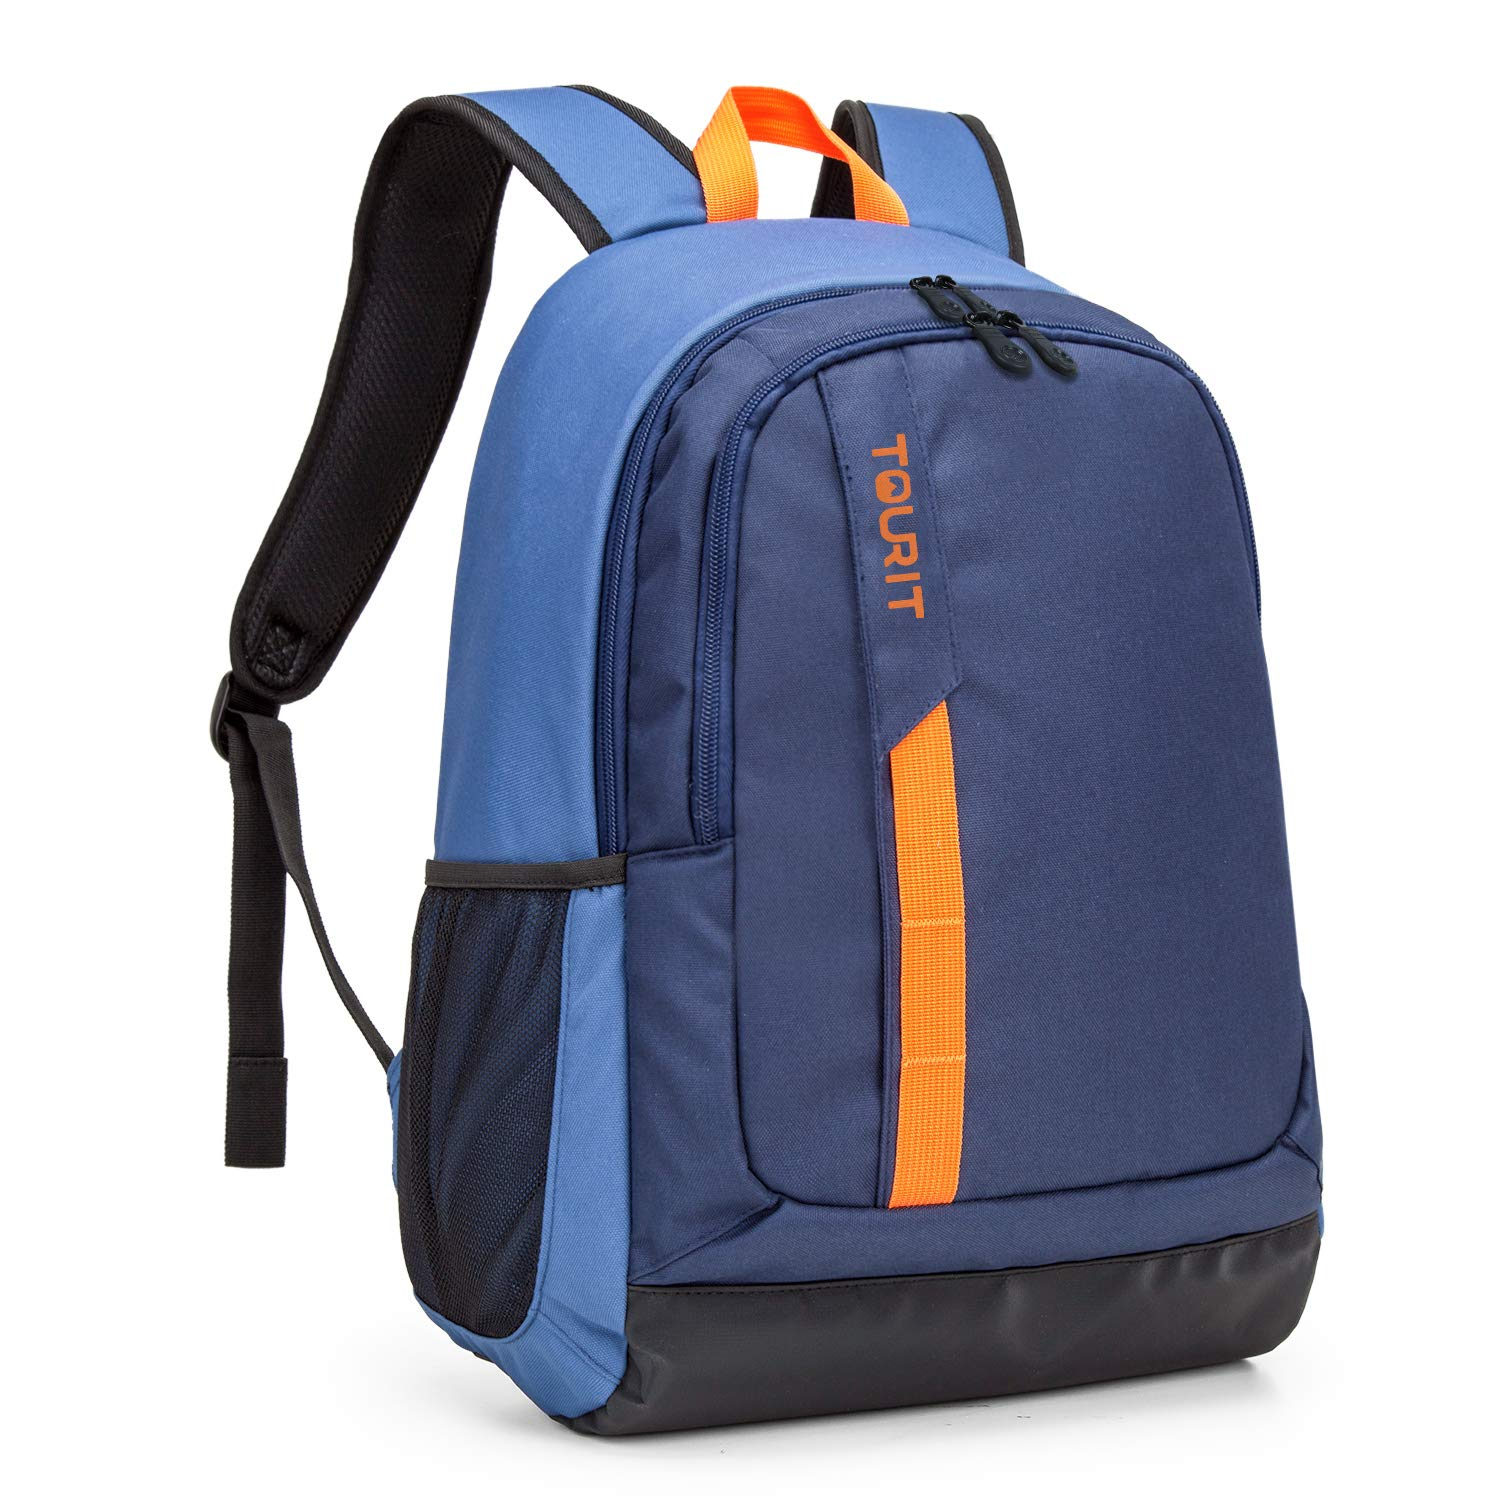 TOURIT Cooler Backpack Lightweigh Lunch Backpack Cooler 28 Cans Insulated Cooler Backpack for Picnic, Hiking, Camping, Beach, Park Day Trips by TOURIT